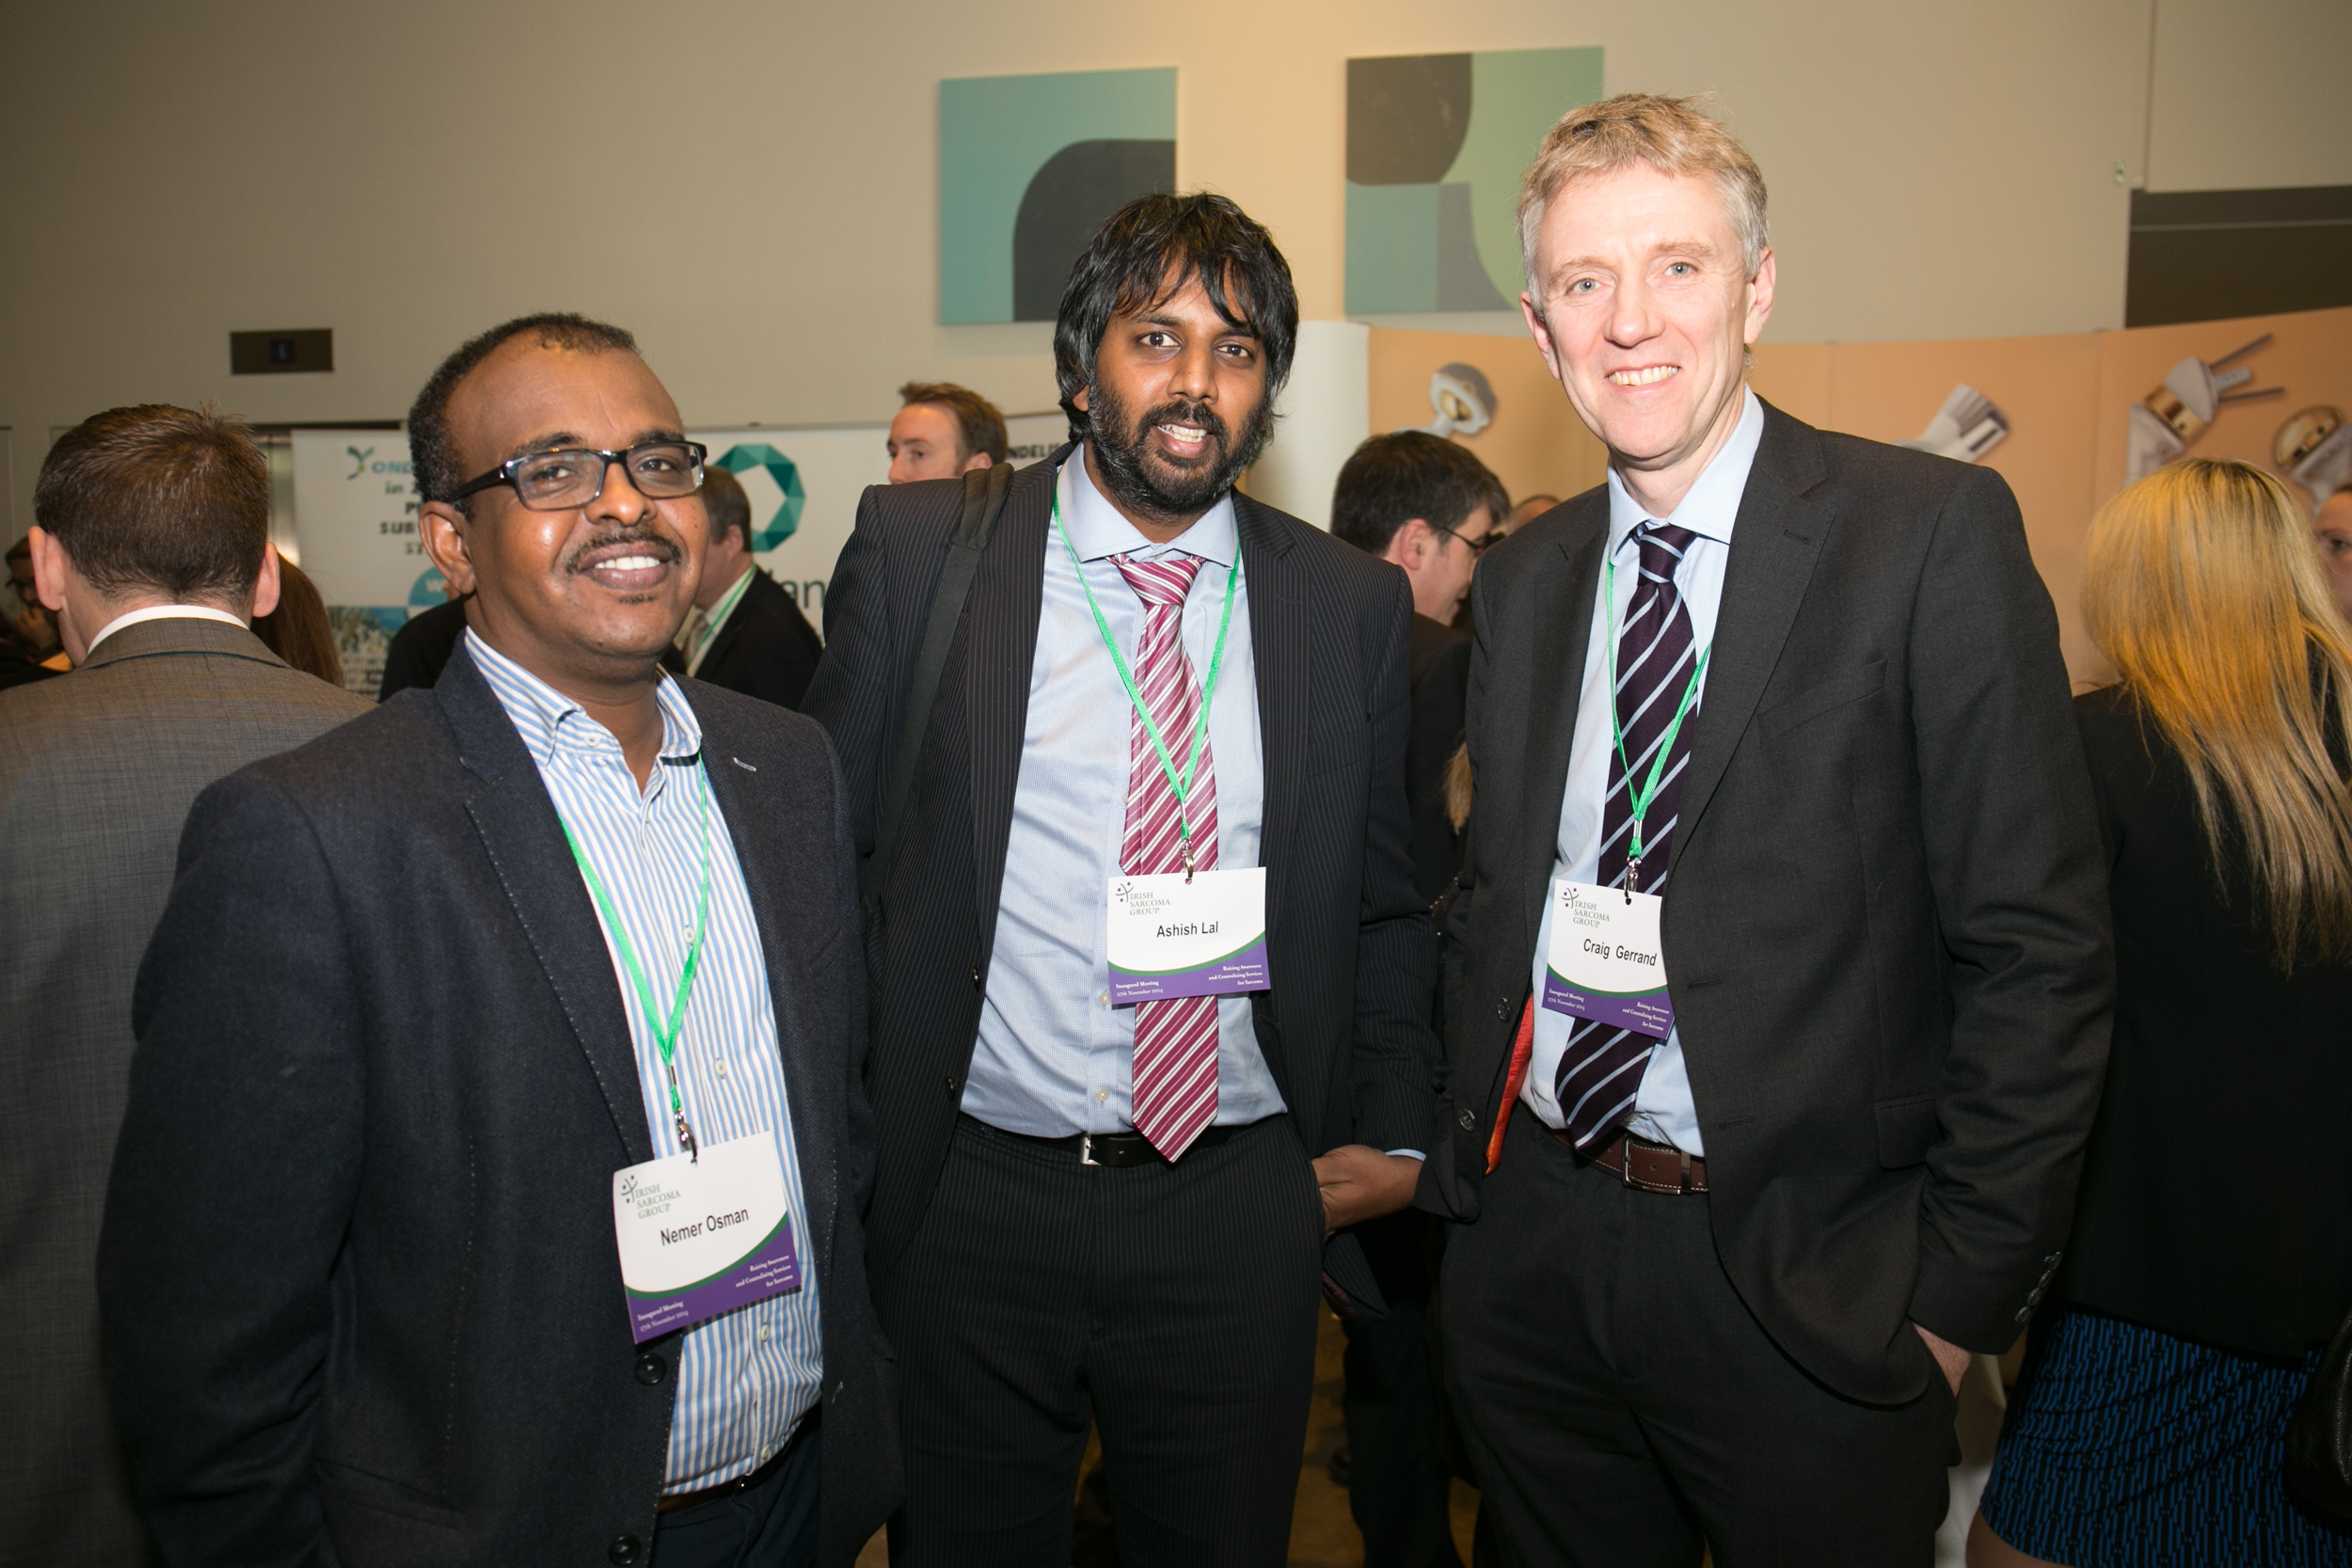 Dr Nemer Osman, Medical Oncologist, Limerick Hospital. Mr Ashish Lal, Orthopeadic Surgeon, Limerick Hospital. Mr Craig Gerrand, Orthopaedic Surgeon, Newcastle